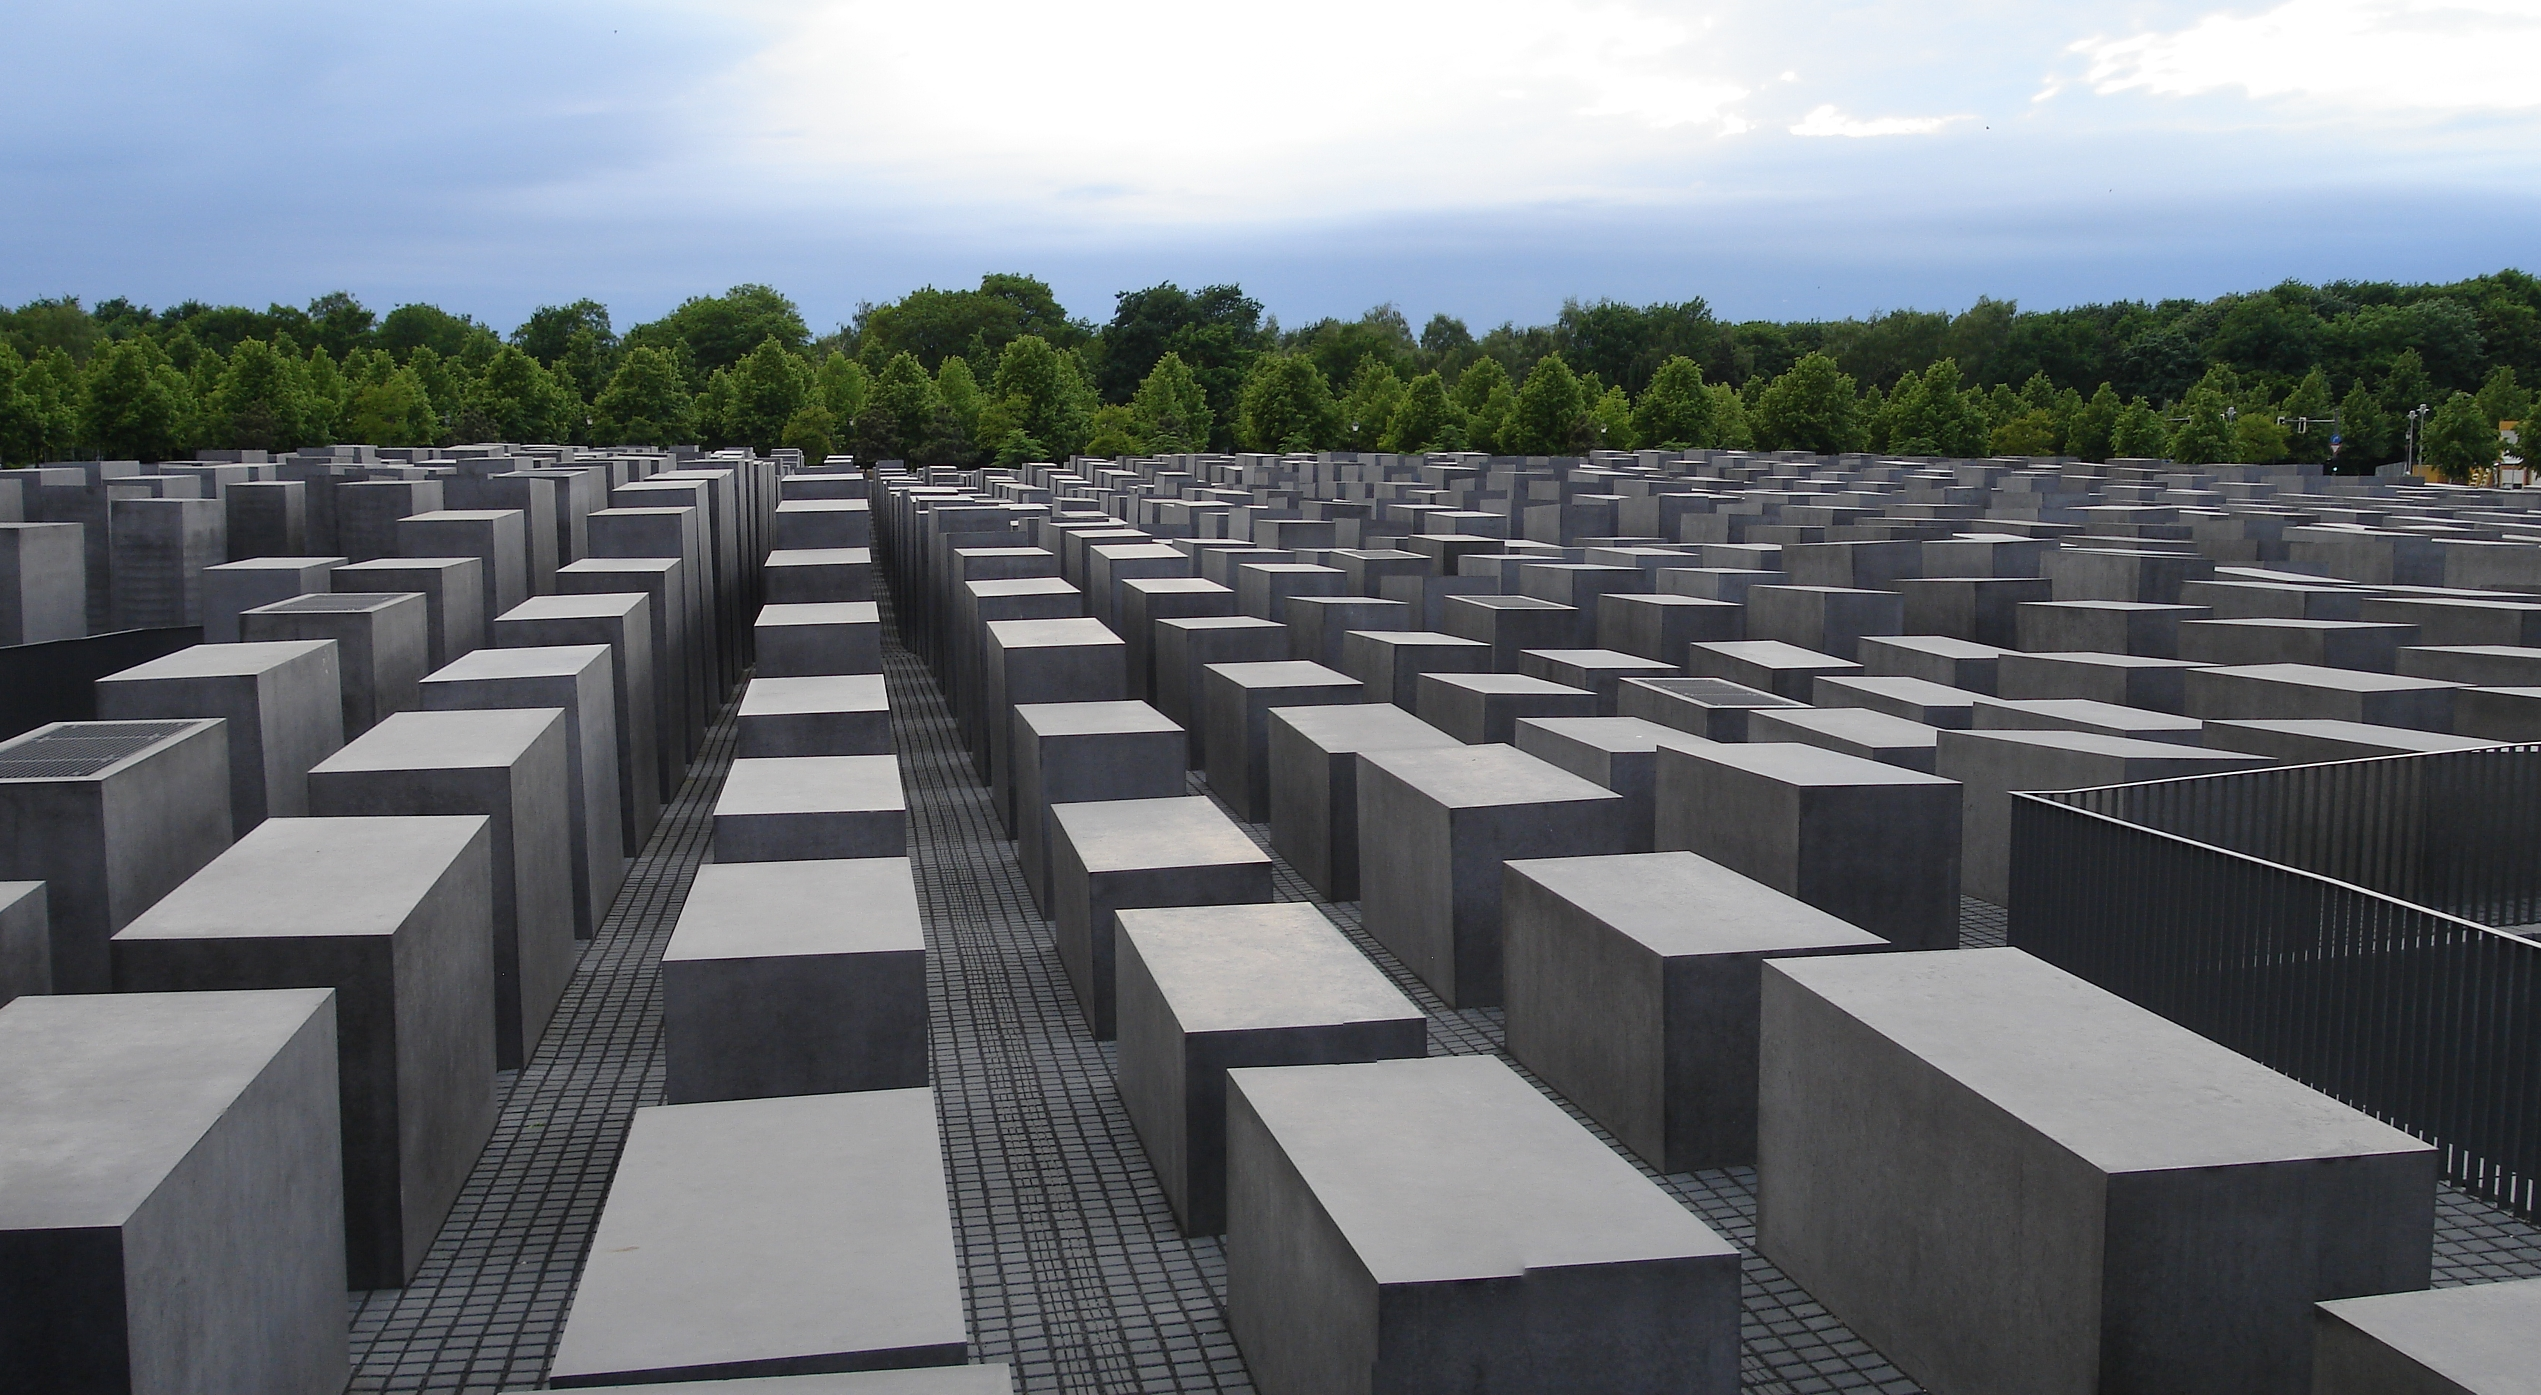 http://upload.wikimedia.org/wikipedia/commons/a/a5/Memorial_to_the_murdered_Jews_of_Europe.jpg